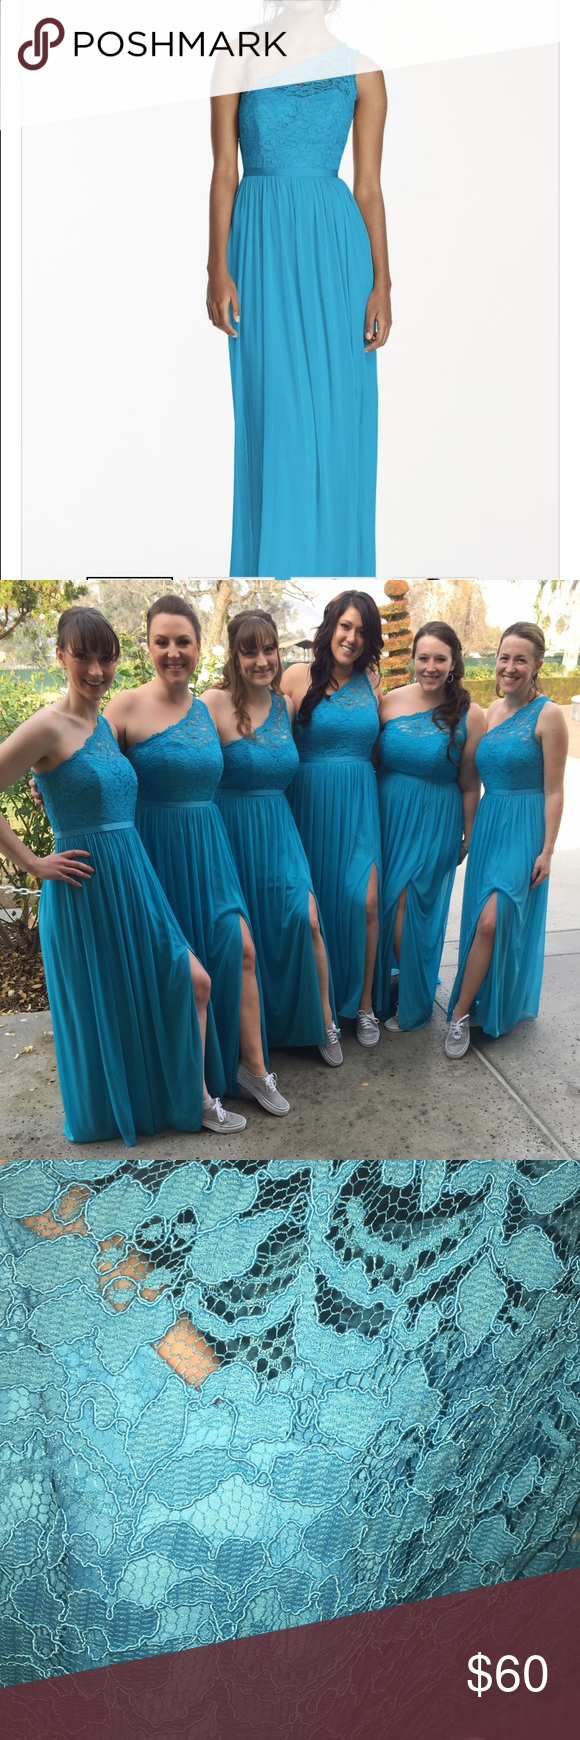 One Shoulder Bridesmaid Dress In Malibu Blue David S Bridal